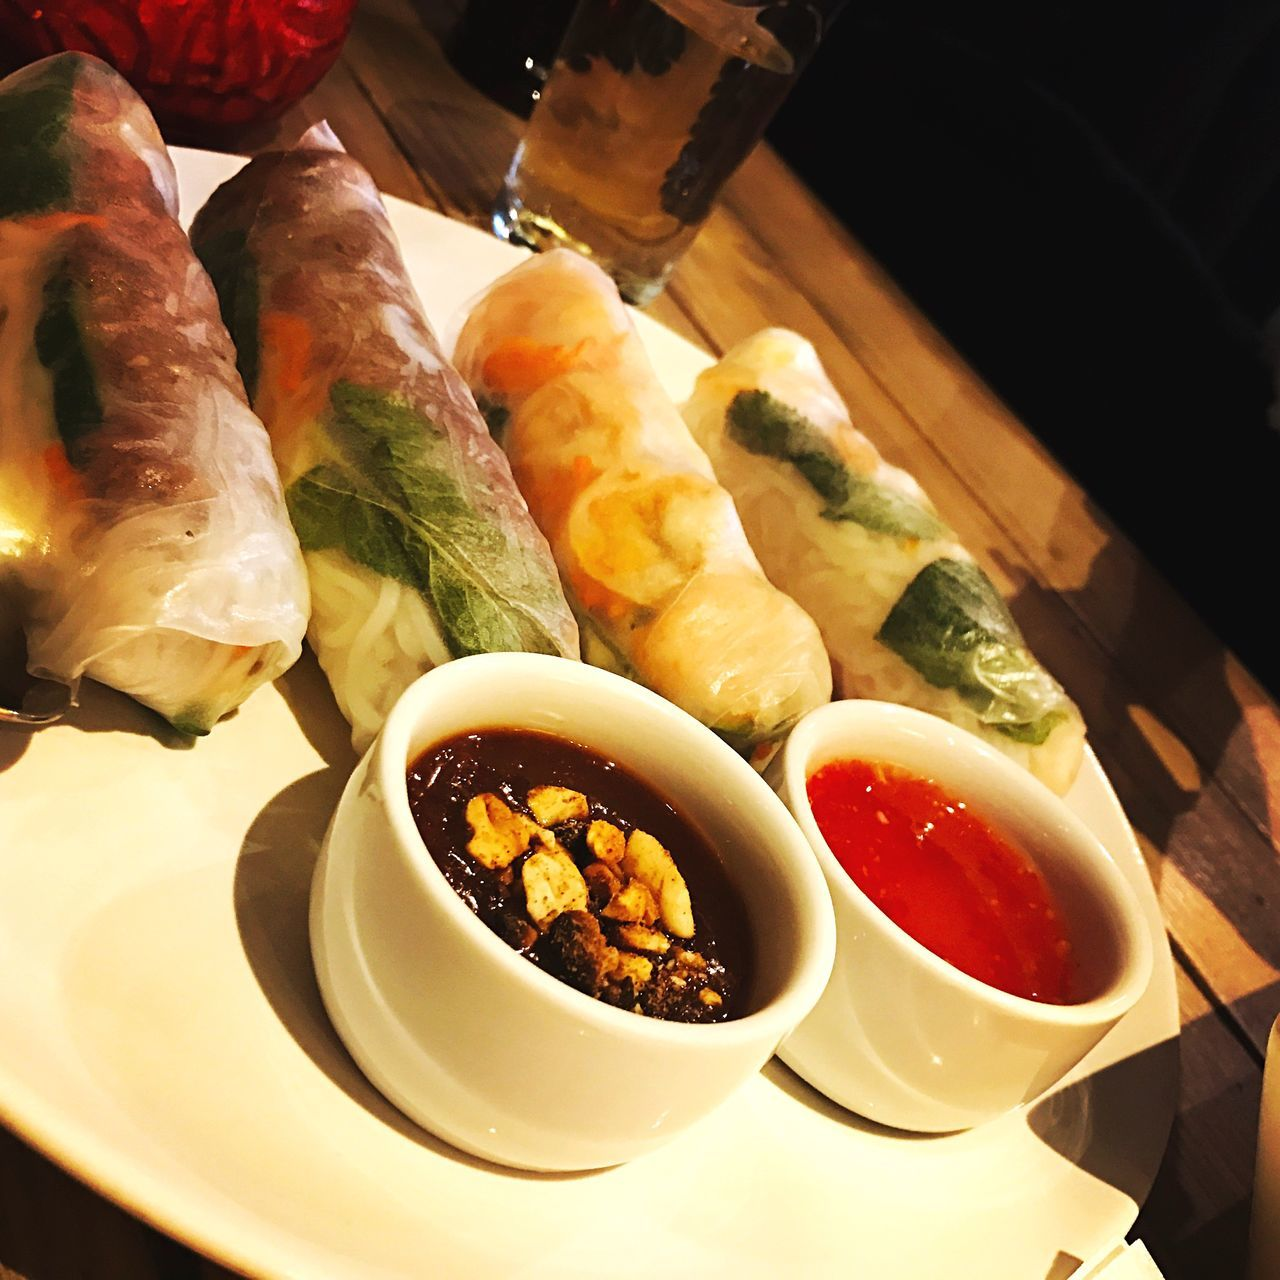 Food Healthy Eating Plate Table Serving Size Ready-to-eat Close-up Vietnamese Vietnamese Food Peanut Sauce Sweetsour Asianfood Beef Shrimp! Rice Paper Rolls Good Nice Taste Good Tasteful Dipping